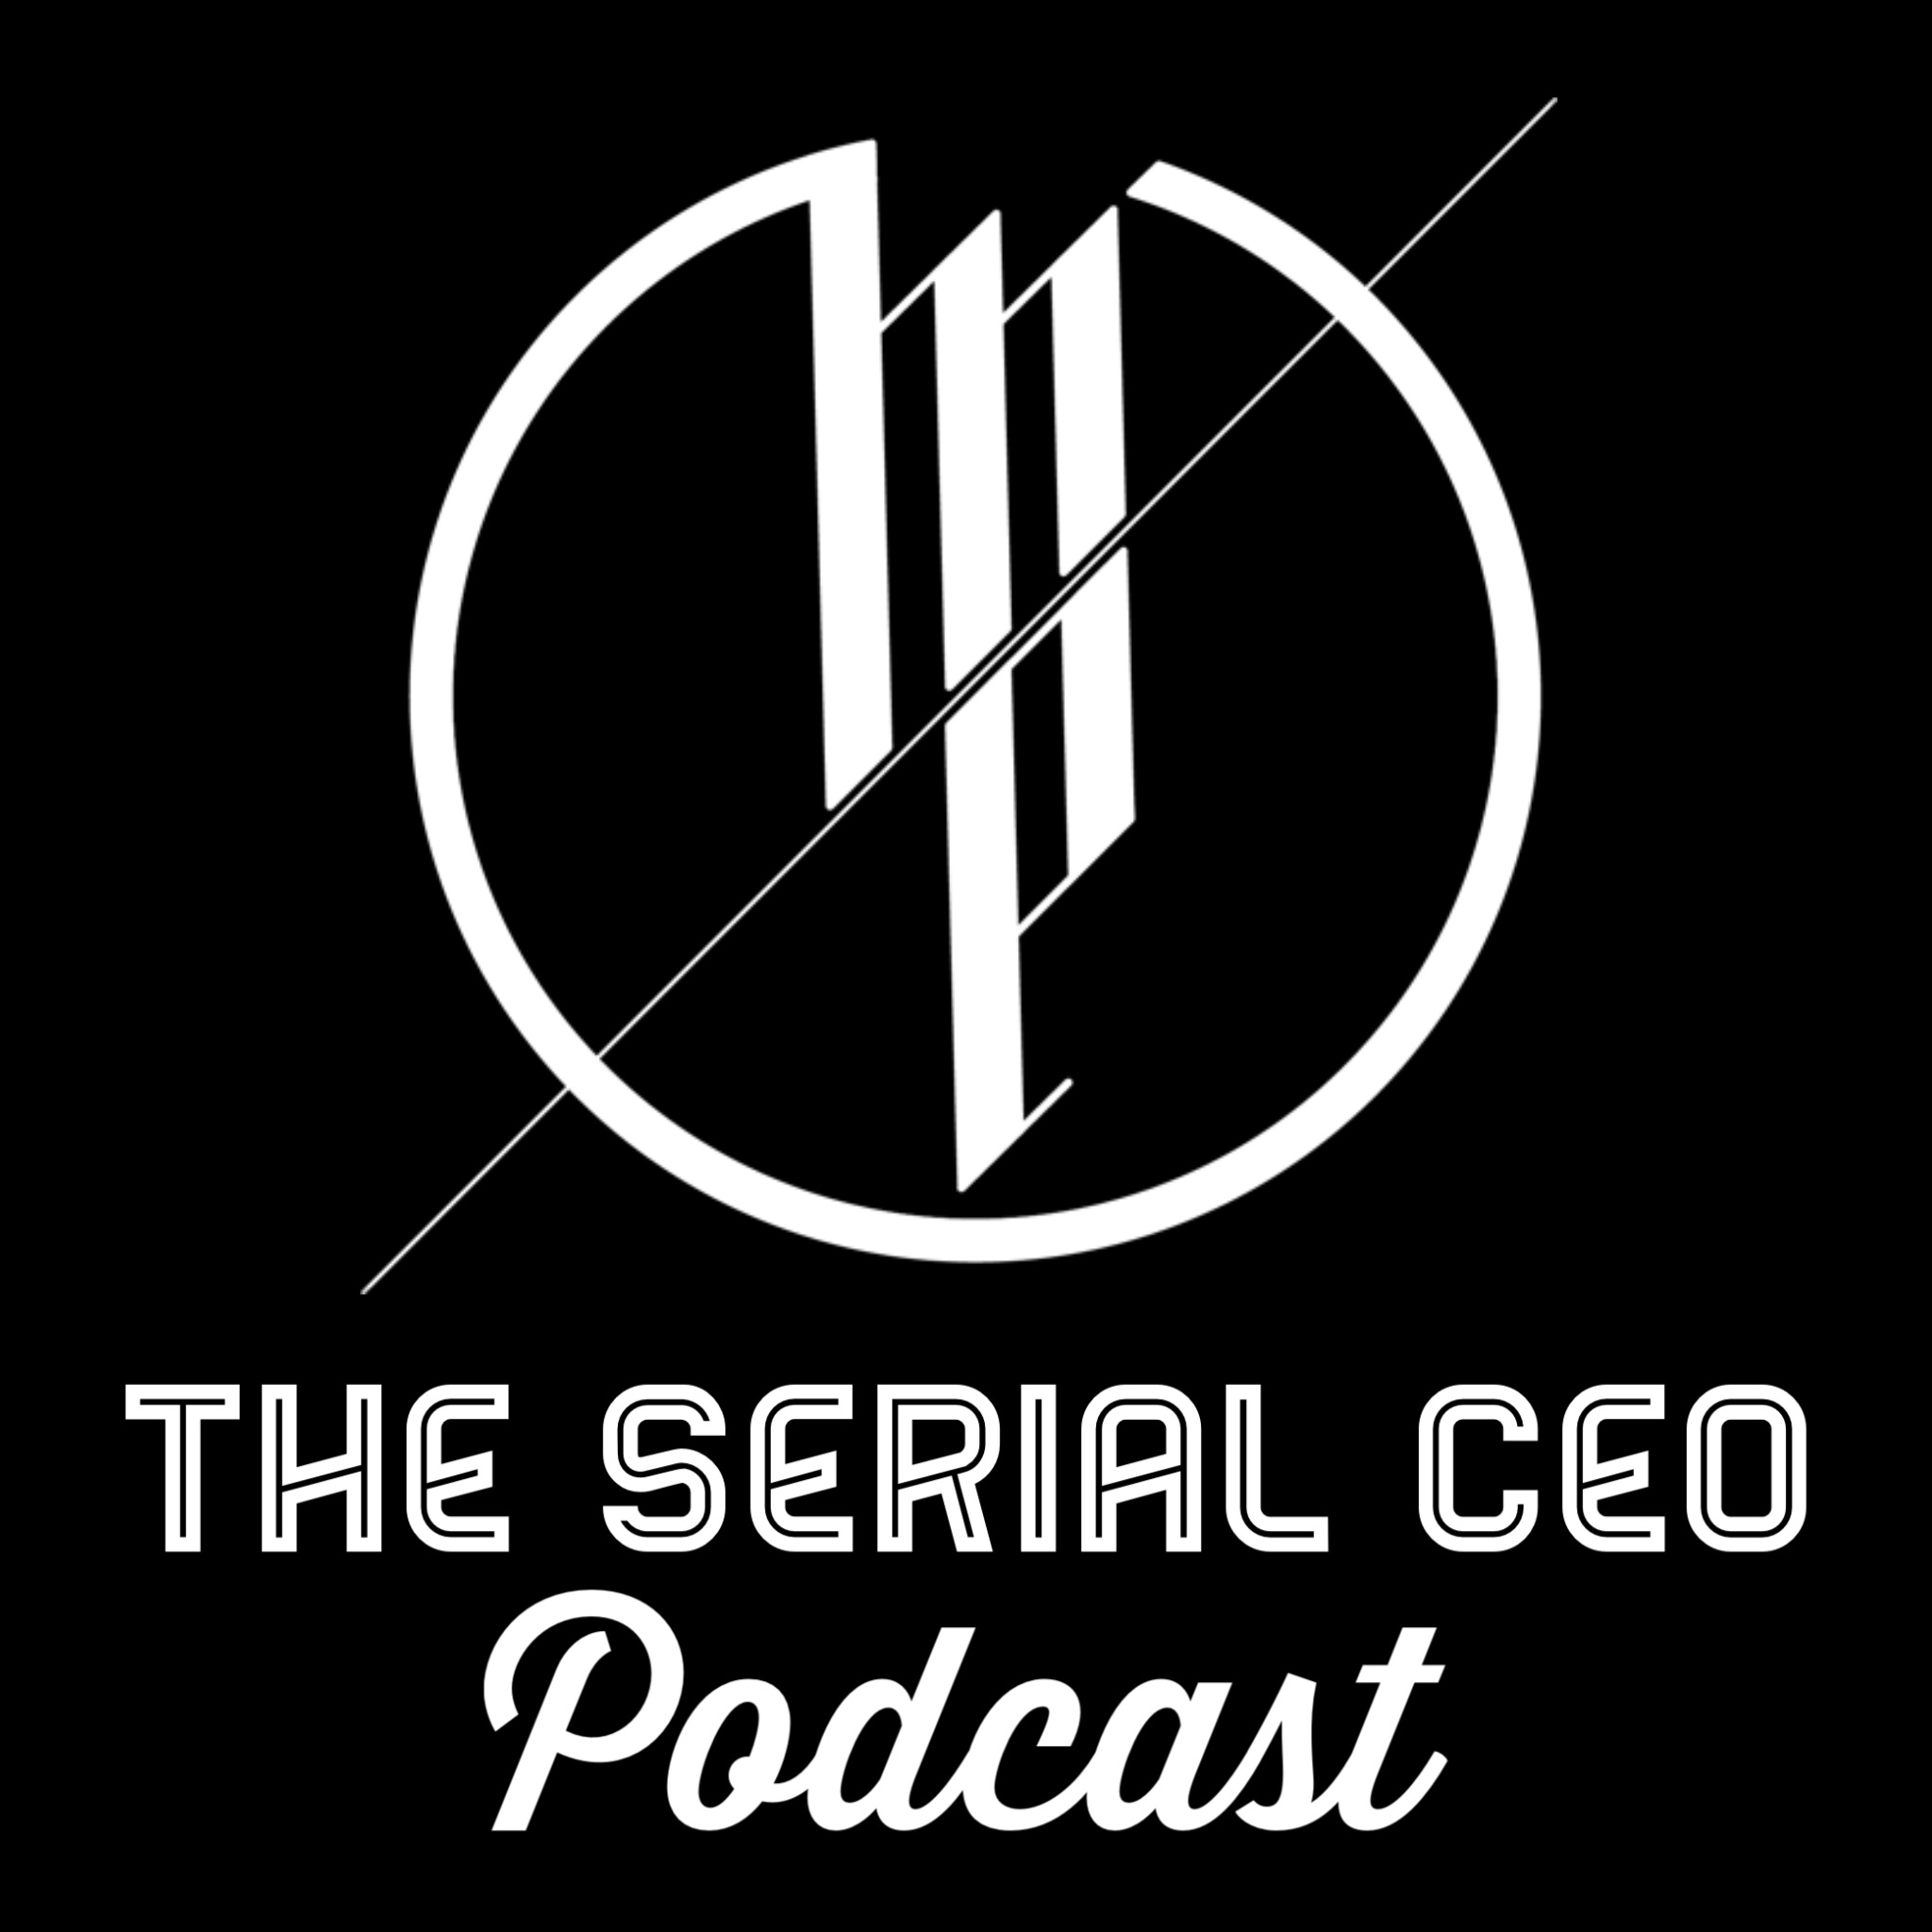 The Serial CEO